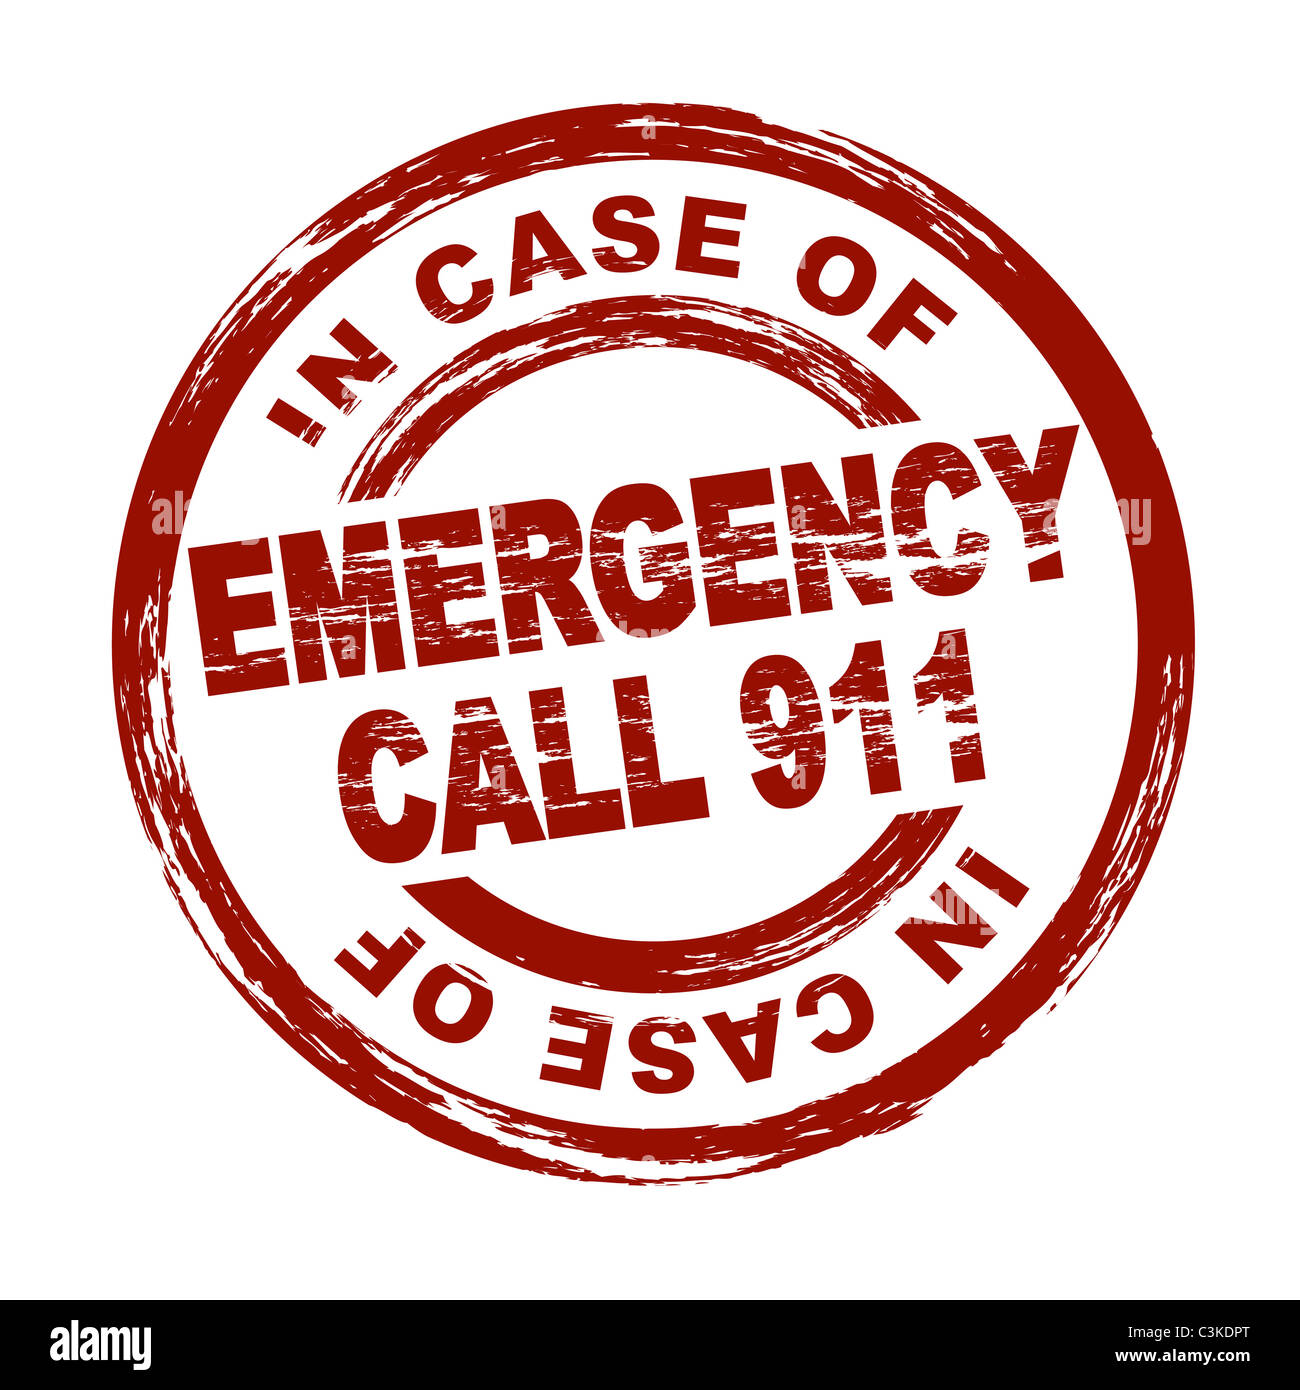 Stylized red stamp showing the term emergency call 911. All on white background. - Stock Image